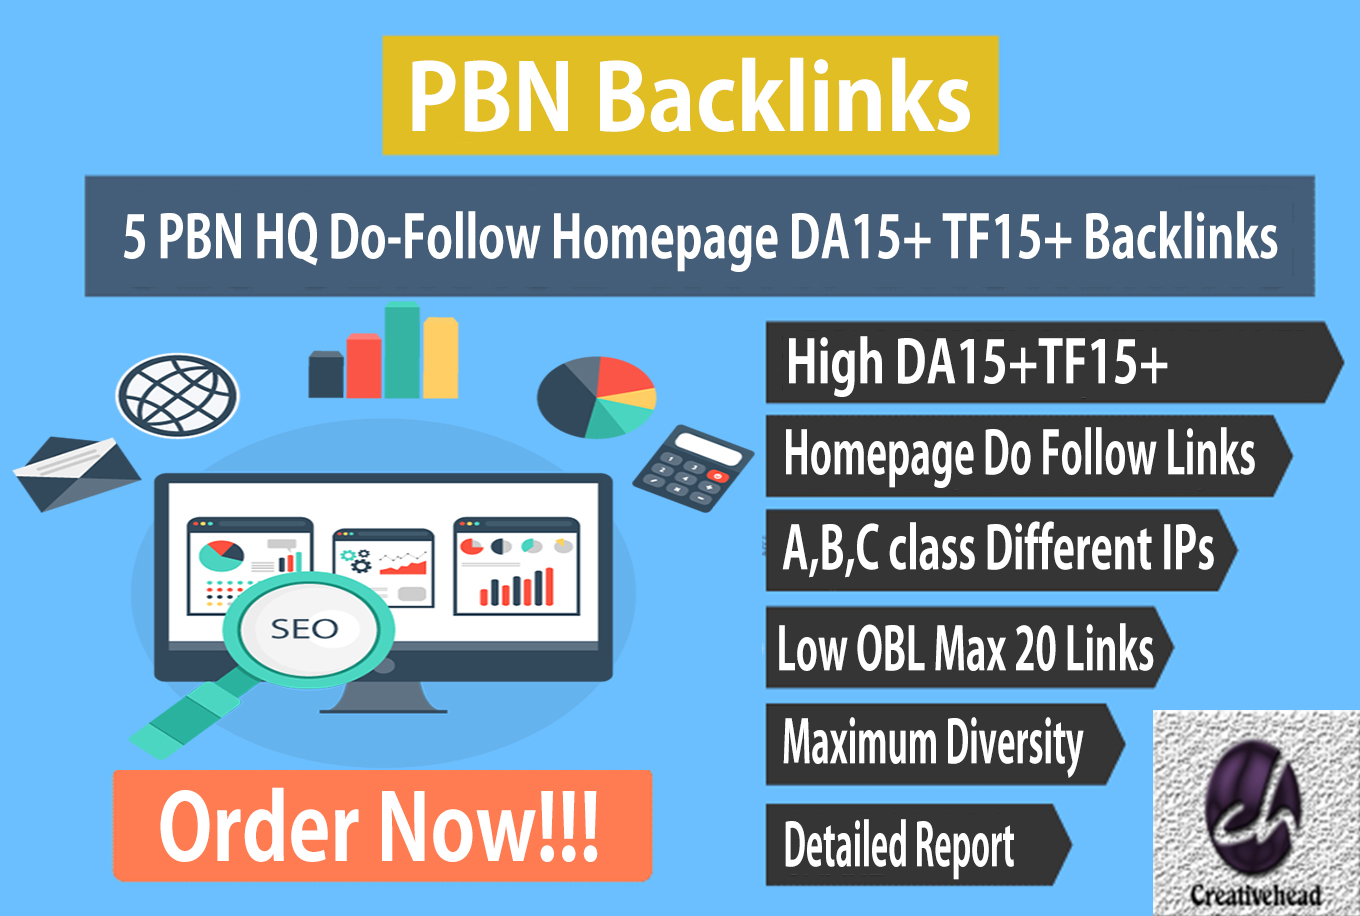 5 PBN HQ Do-Follow Homepage DA15+ TF15+ Backlinks only